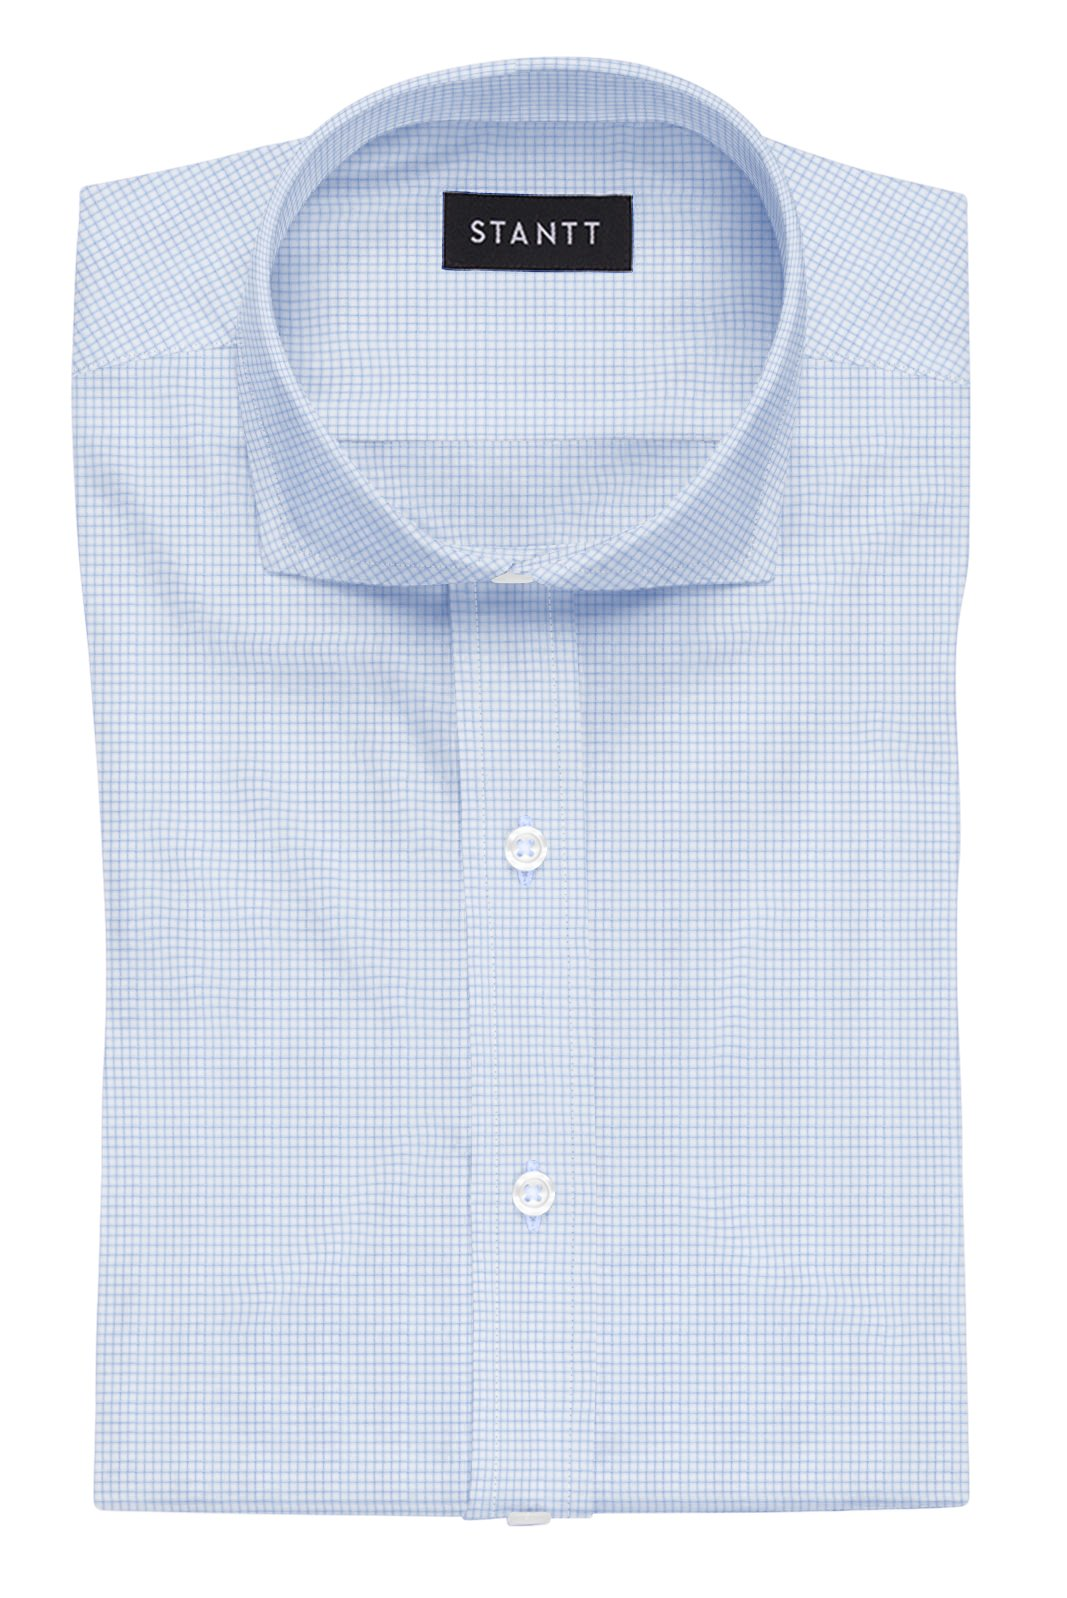 Wrinkle-Resistant Light Blue Accented Mini-Check: Cutaway Collar, French Cuff